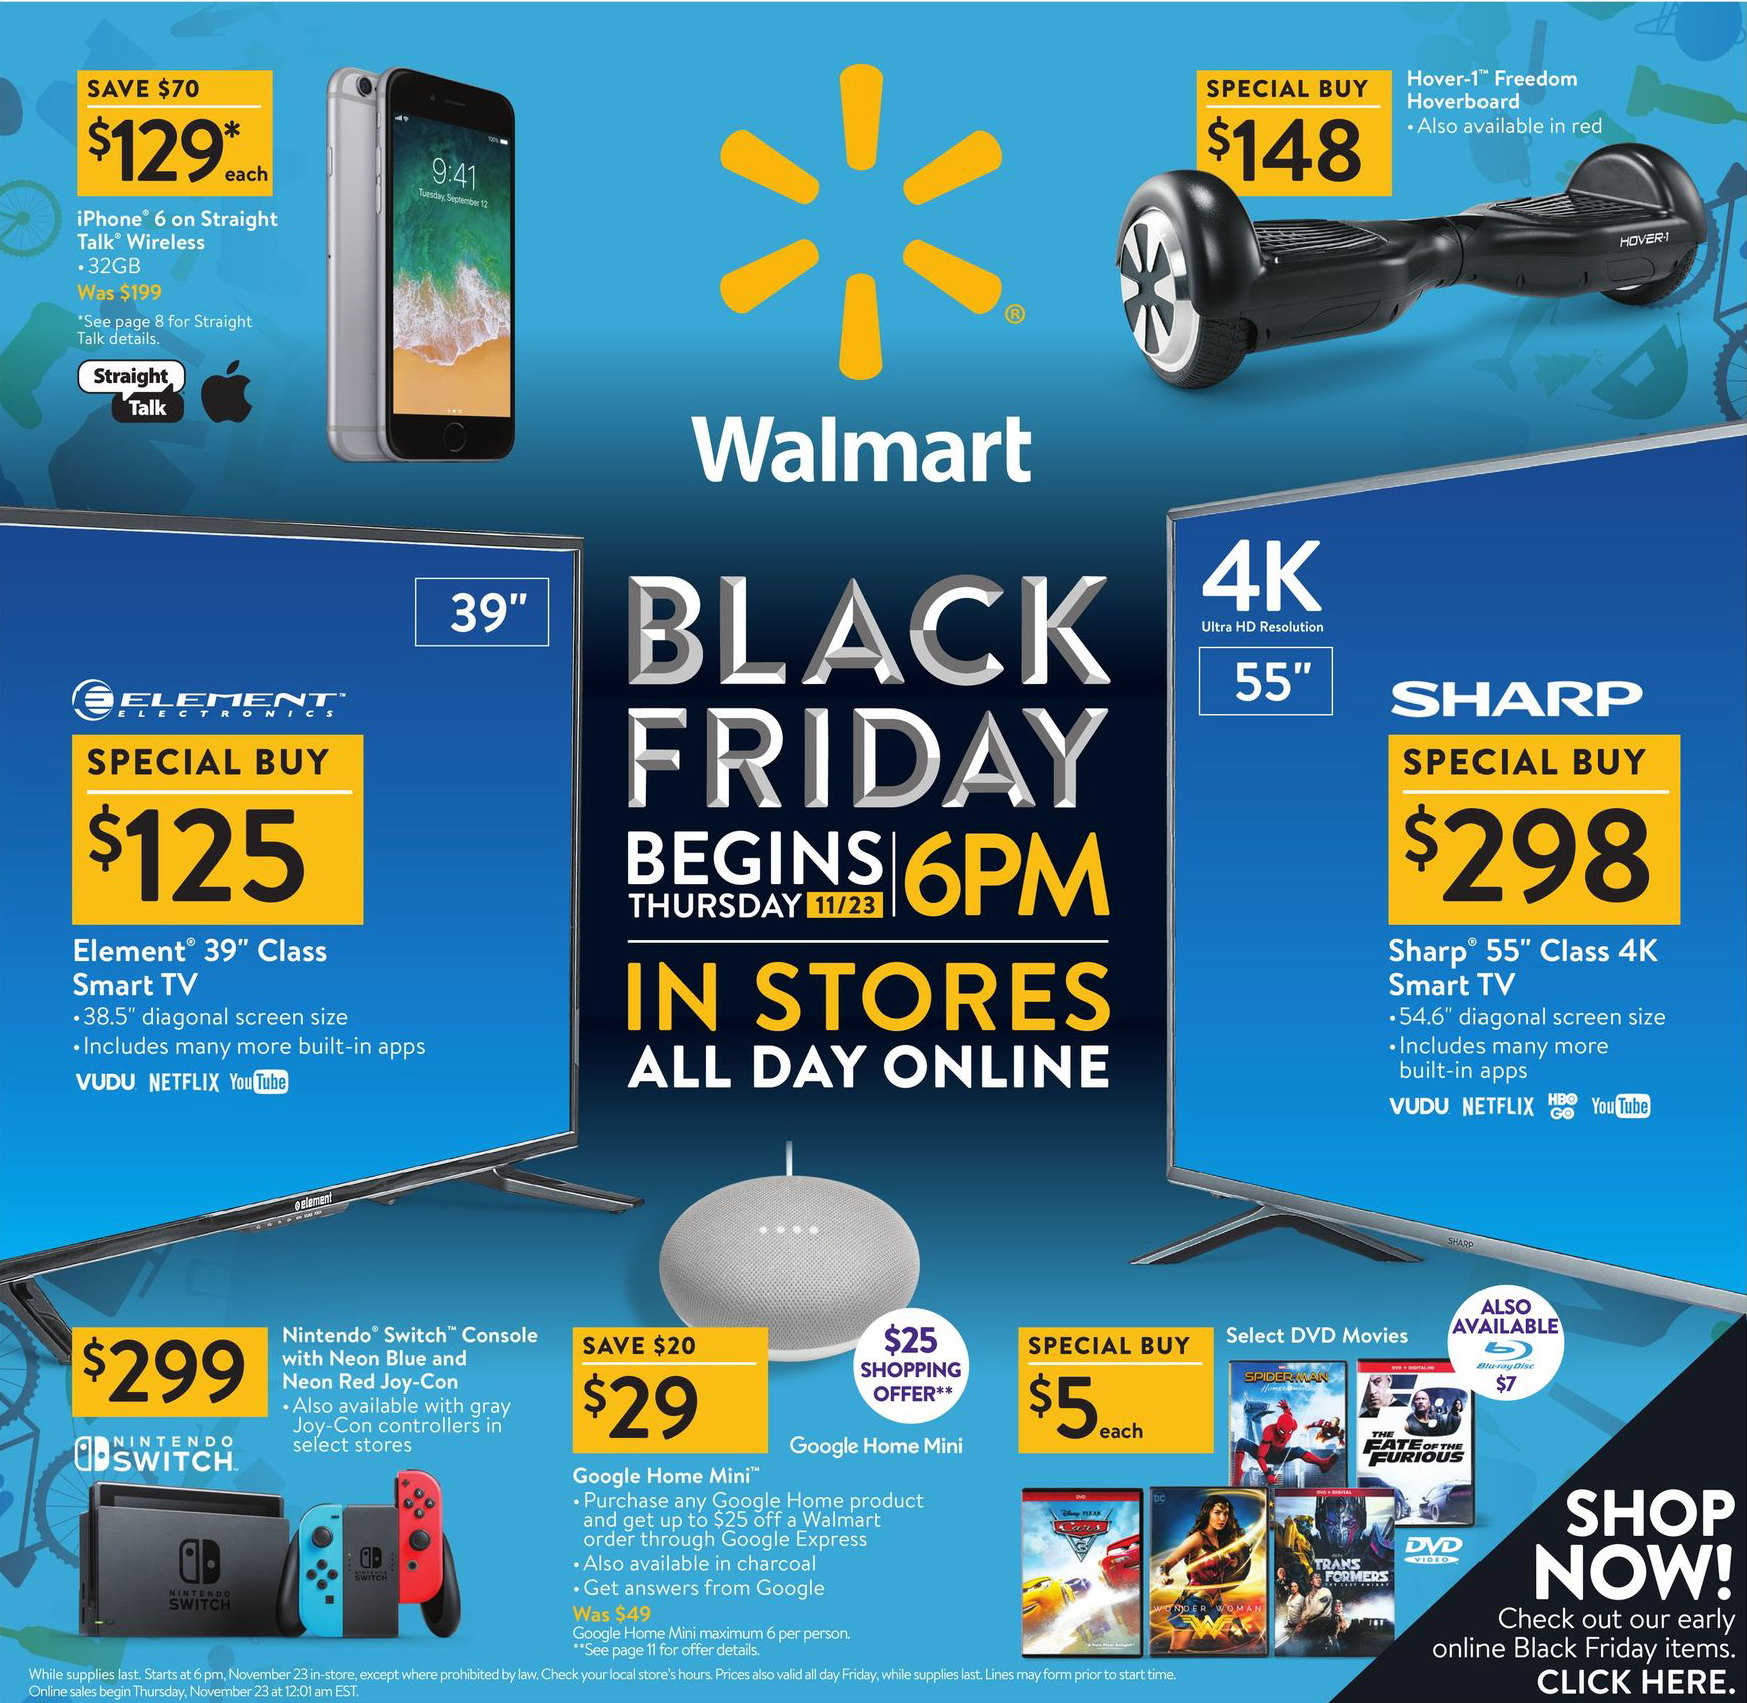 Walmart Black Friday Ad 2017 Walmart Black Friday Ad Black Friday Ads Black Friday Walmart